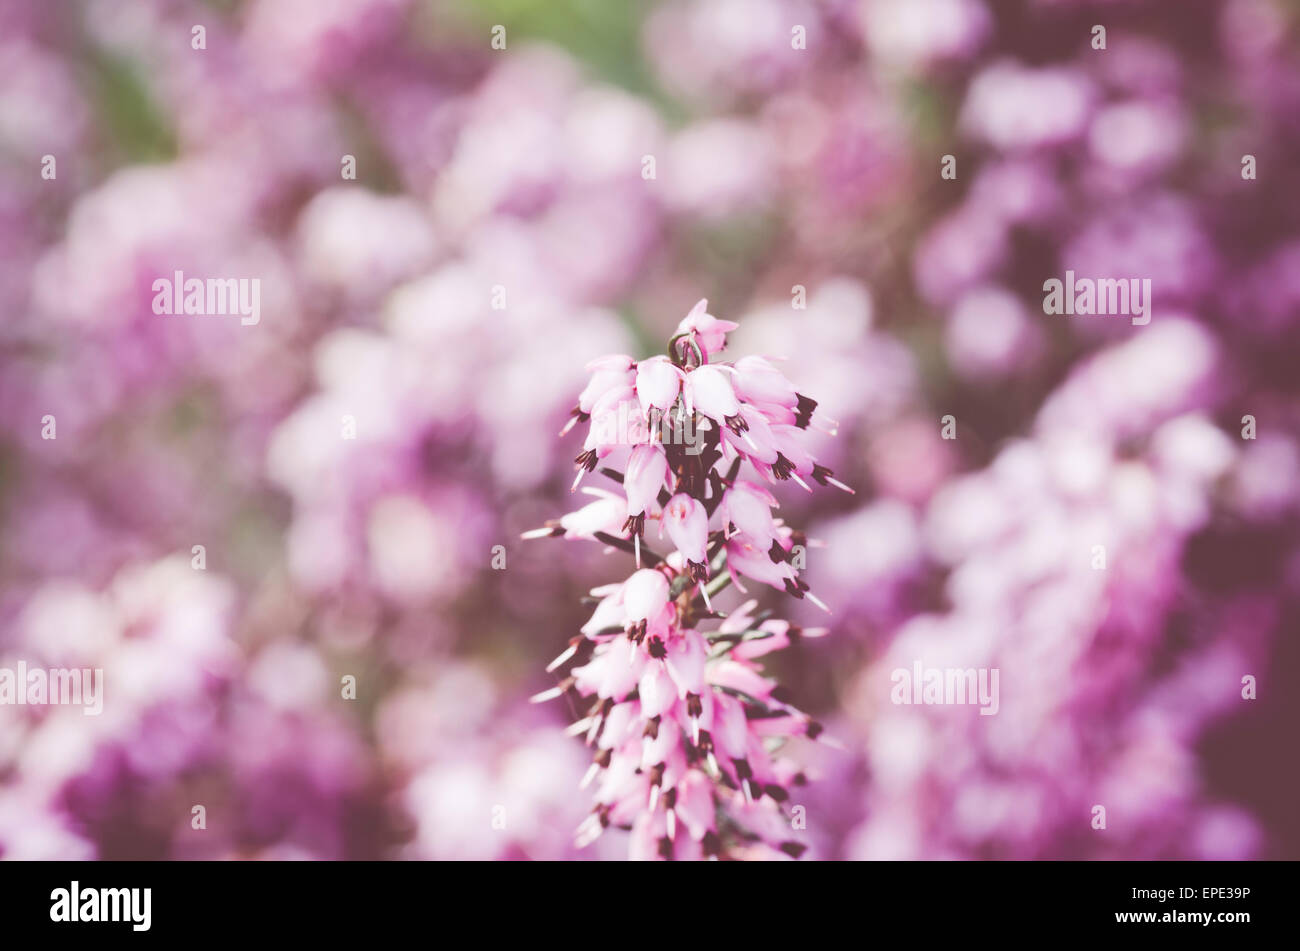 pink heather shrub inflorescence on a pink green background - early spring flowers - Stock Image